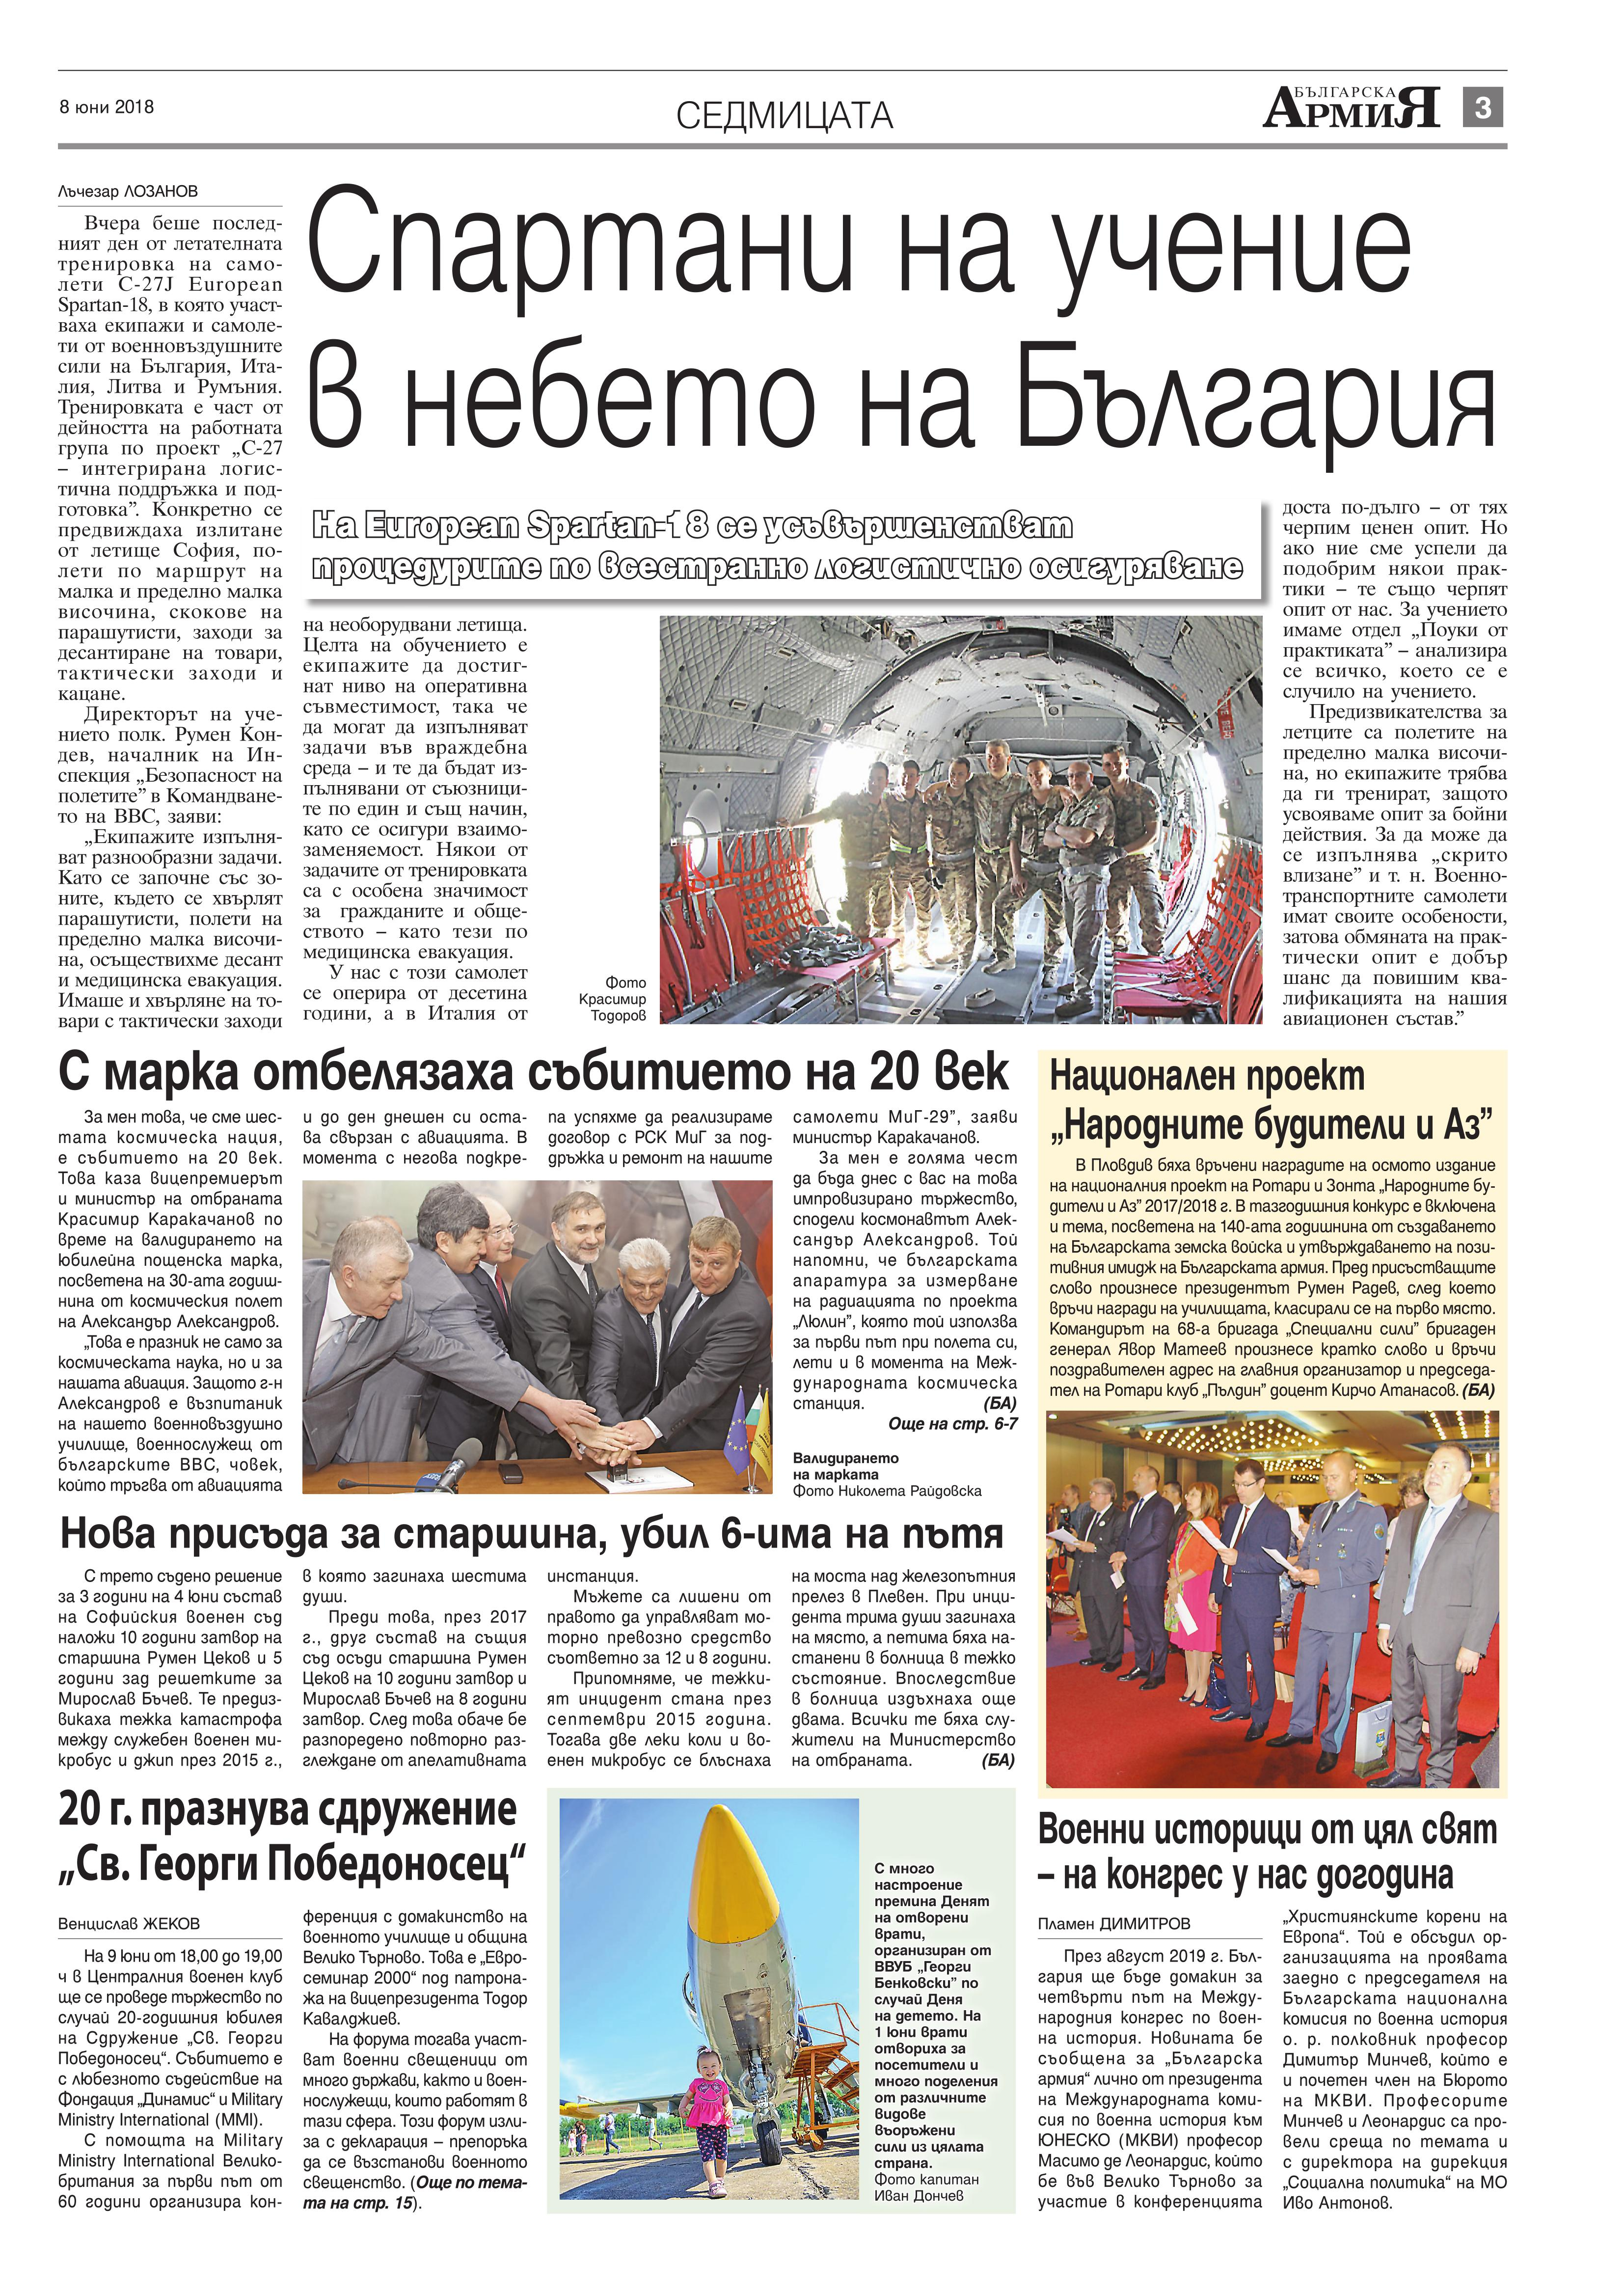 https://armymedia.bg/wp-content/uploads/2015/06/03.page1_-51.jpg